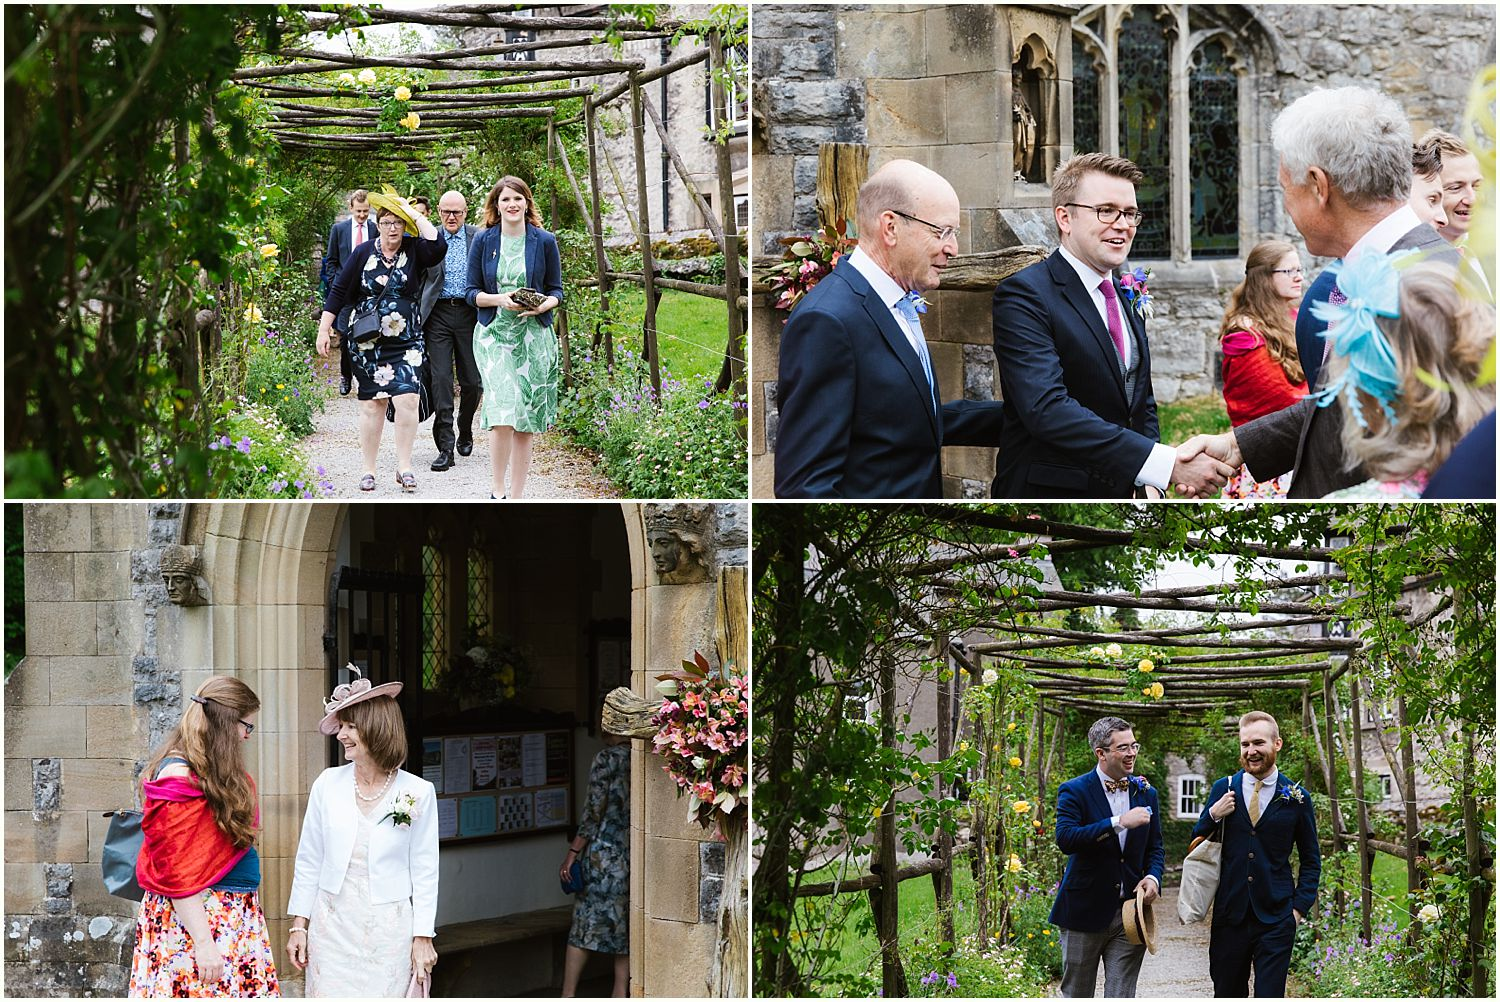 Montage of guests arriving for wedding ceremony in South Lakeland